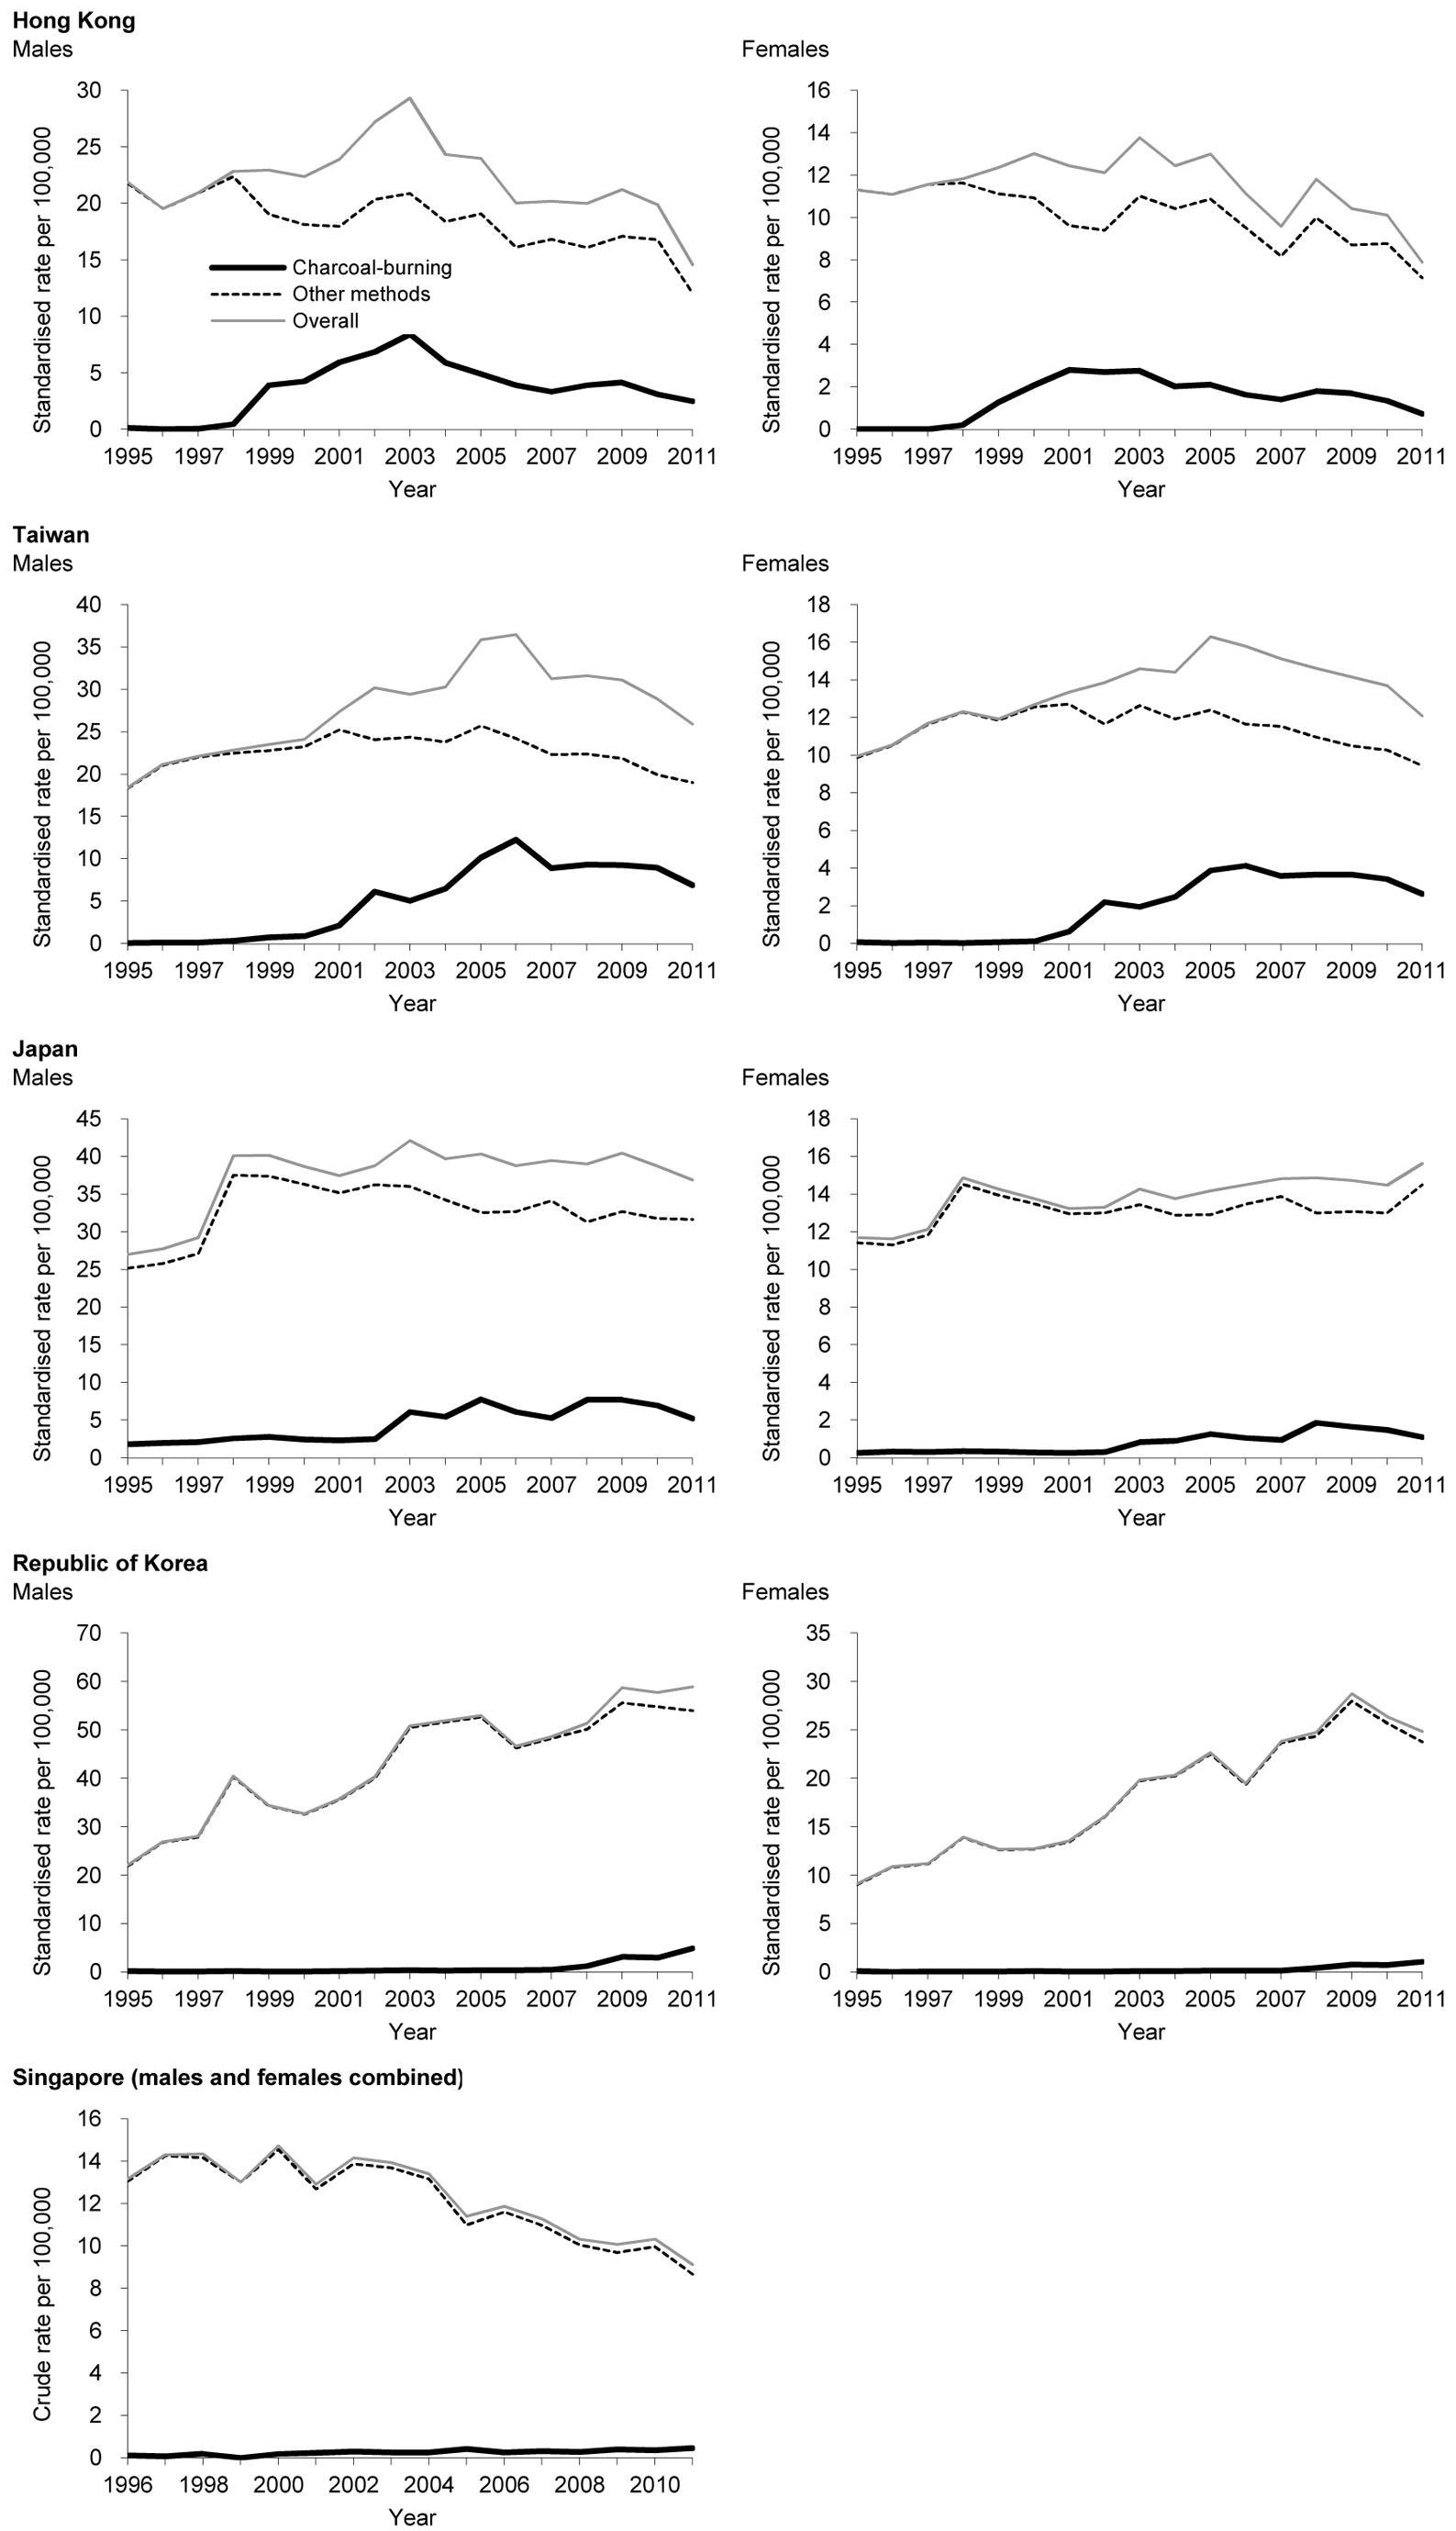 Time trends in suicide rates: overall suicide, charcoal-burning suicide, and suicide by other methods.